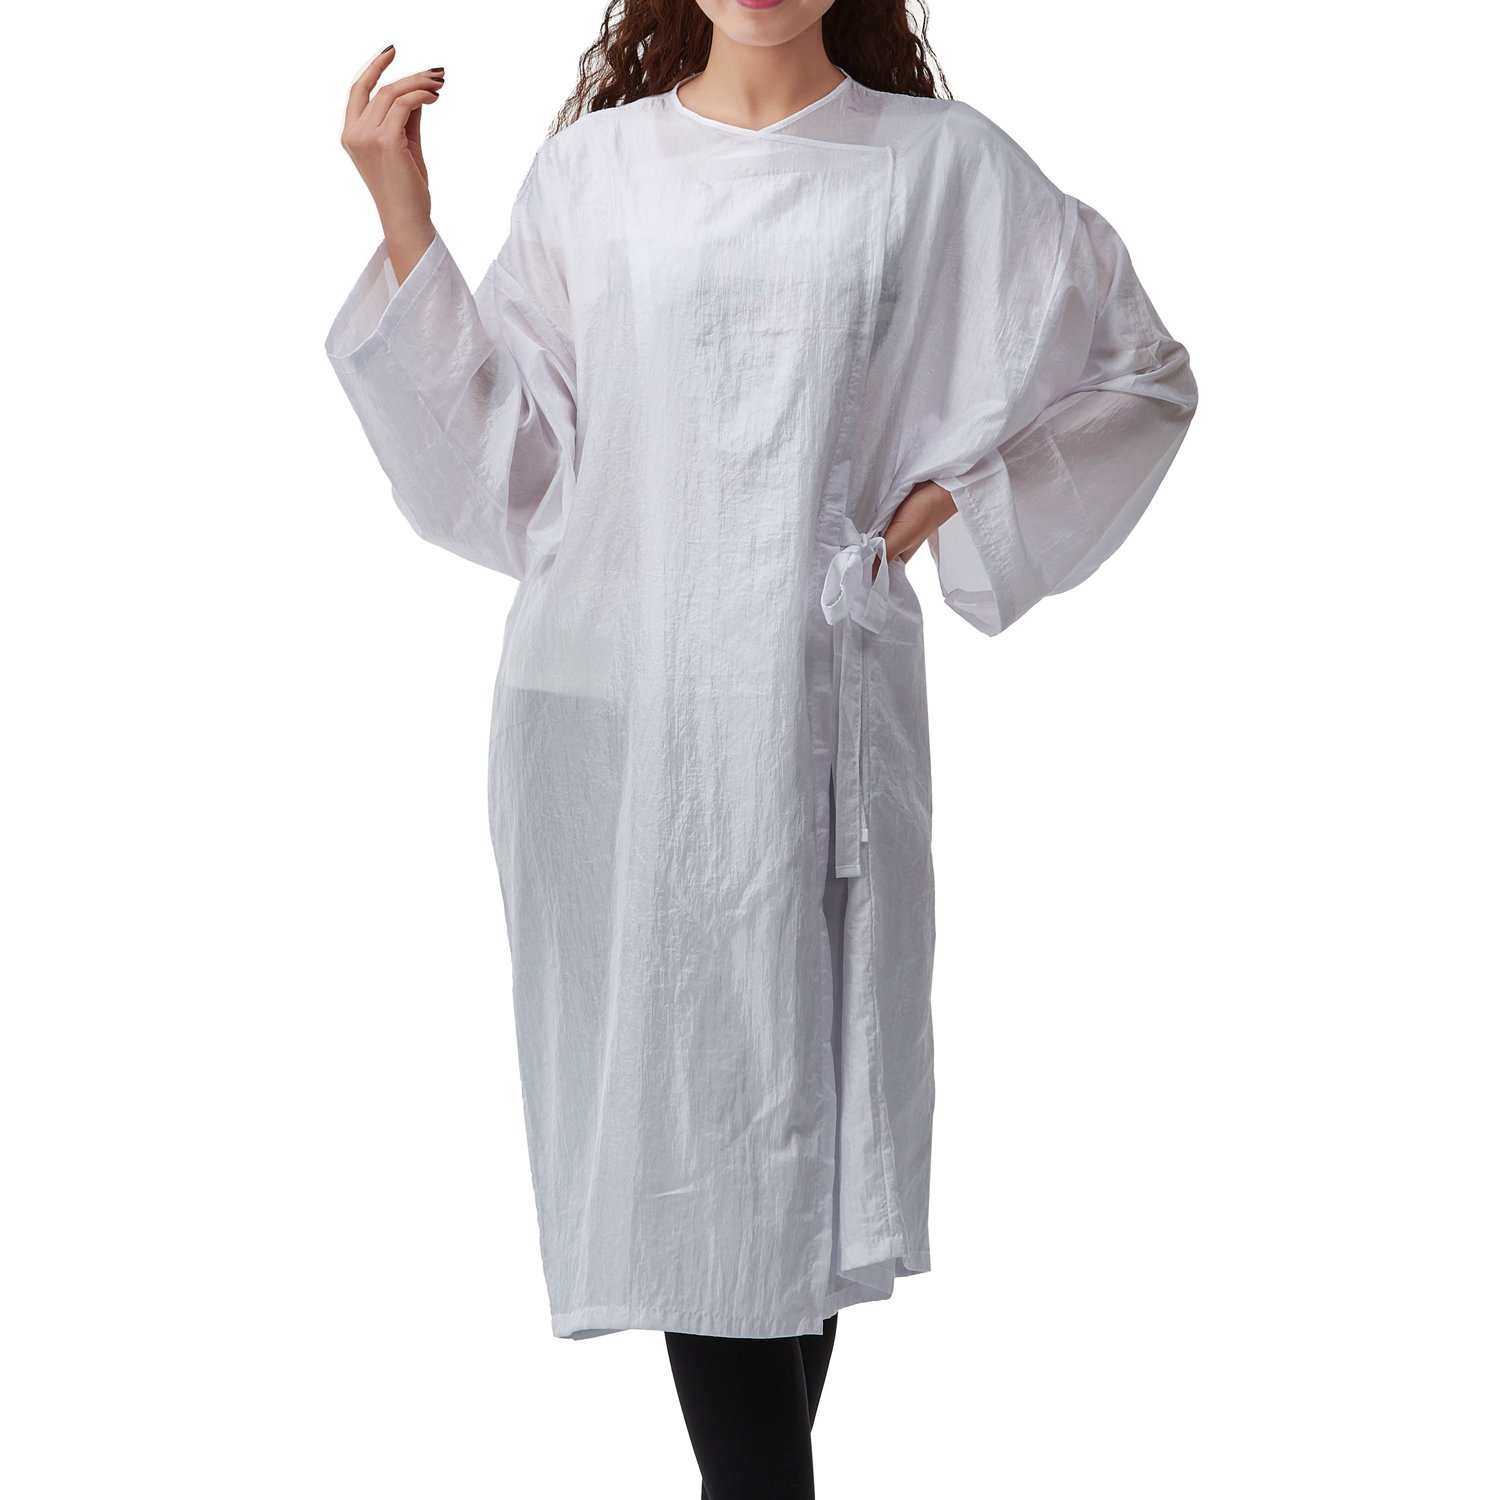 Colorfulife Salon Client Gown Robe Crepe Large Smock Kimono Hairdressing Cape Dress Beauty SPA Hotel Barber Guest Clothes Night-gown Wrap (White) beautifulove